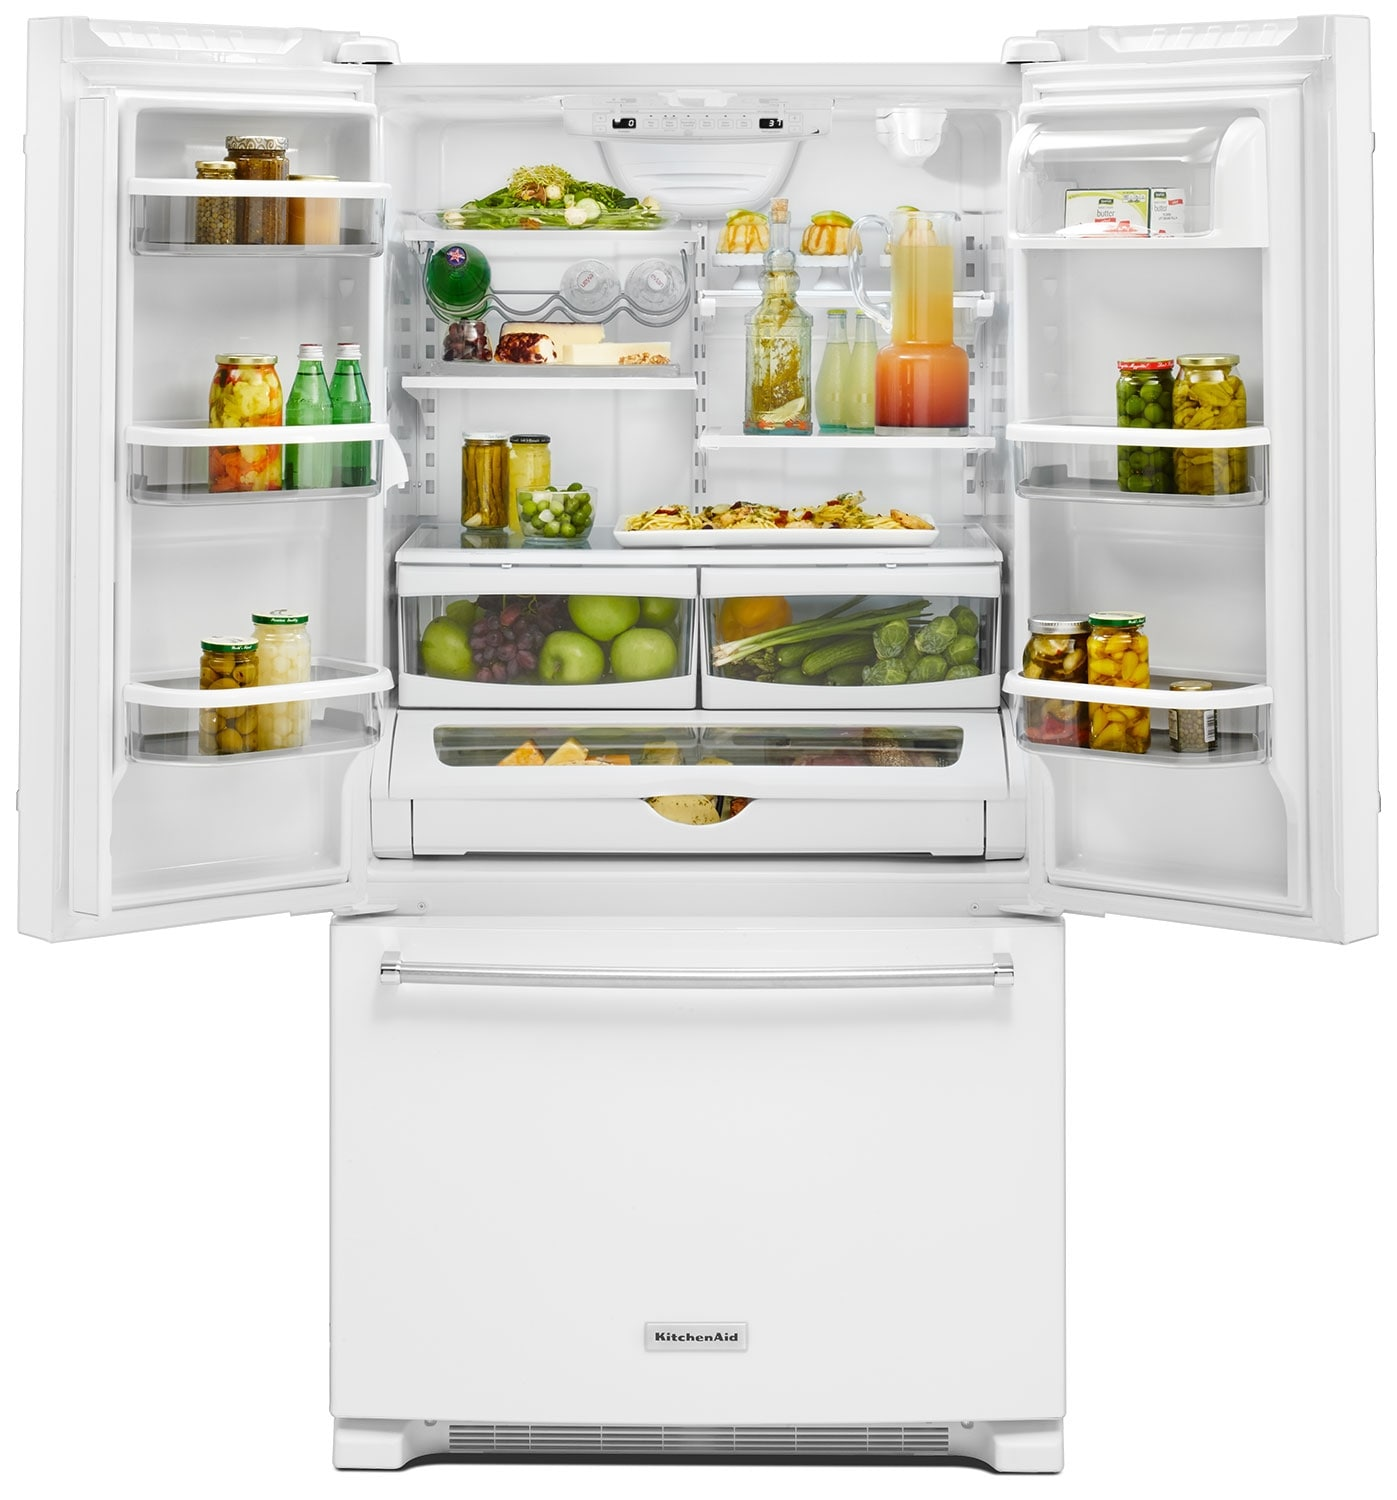 KitchenAid 25 Cu. Ft. French Door Refrigerator With